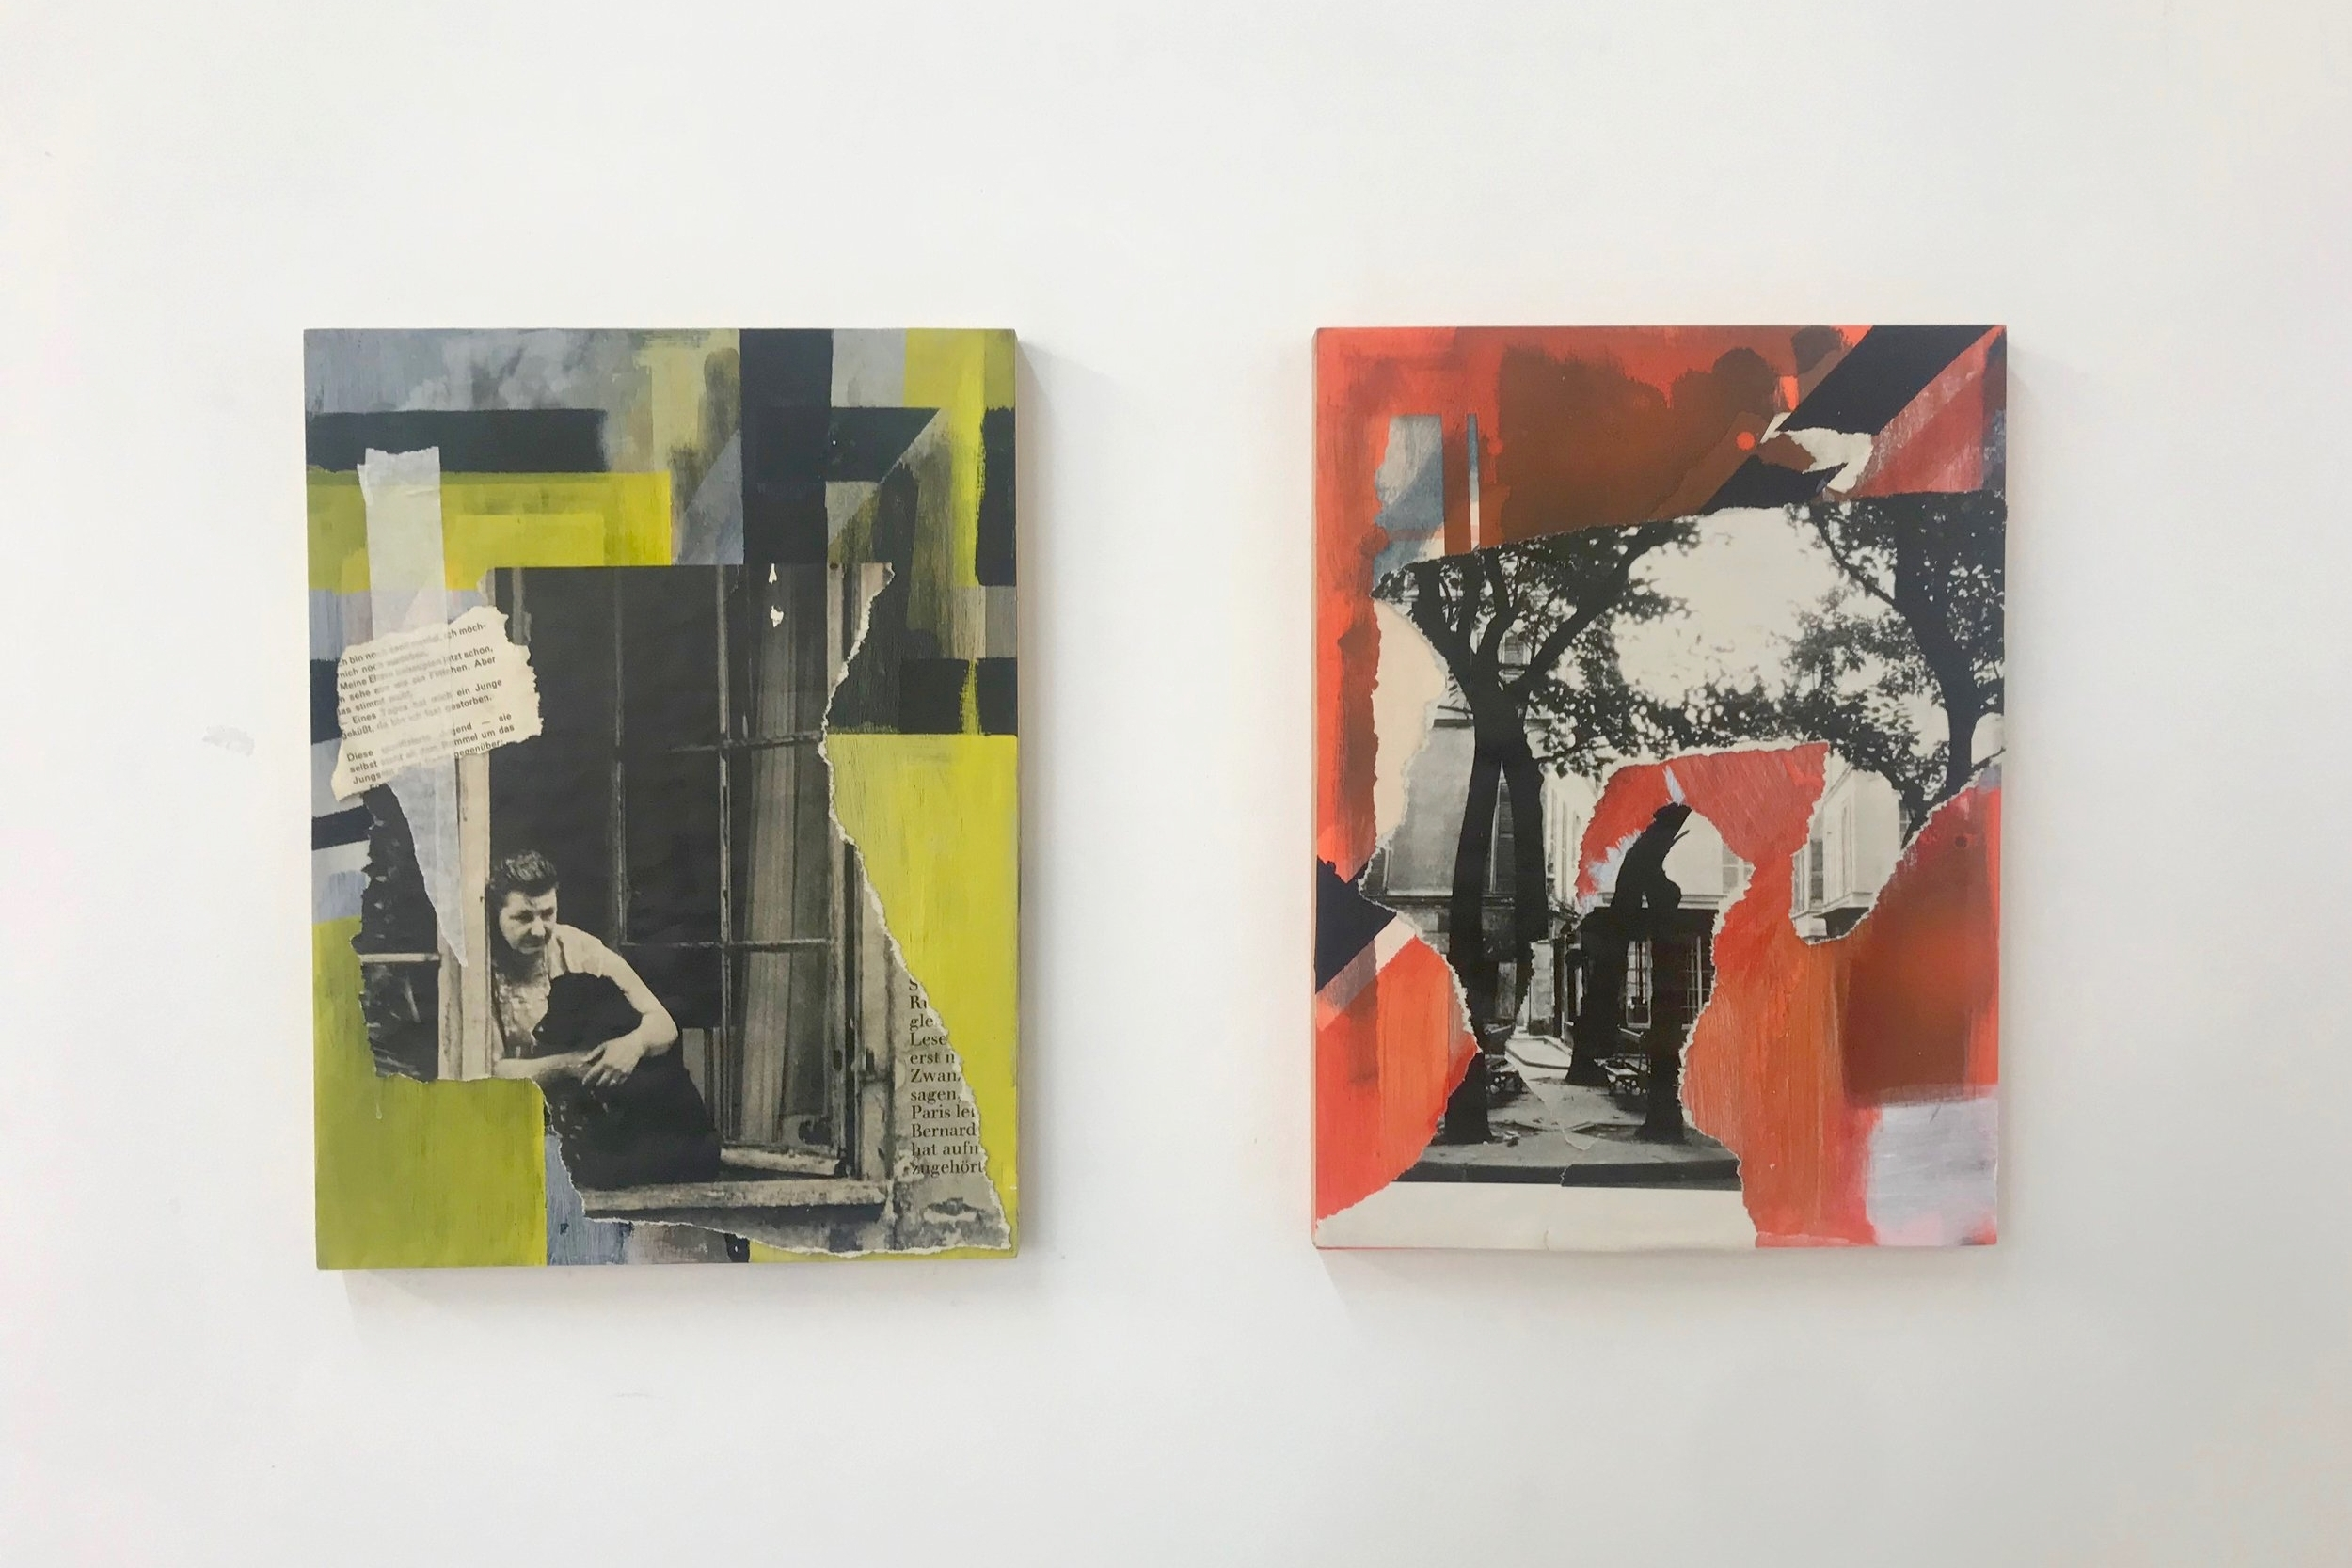 Acrylic and collage on wood, 23cm x30.5cm each